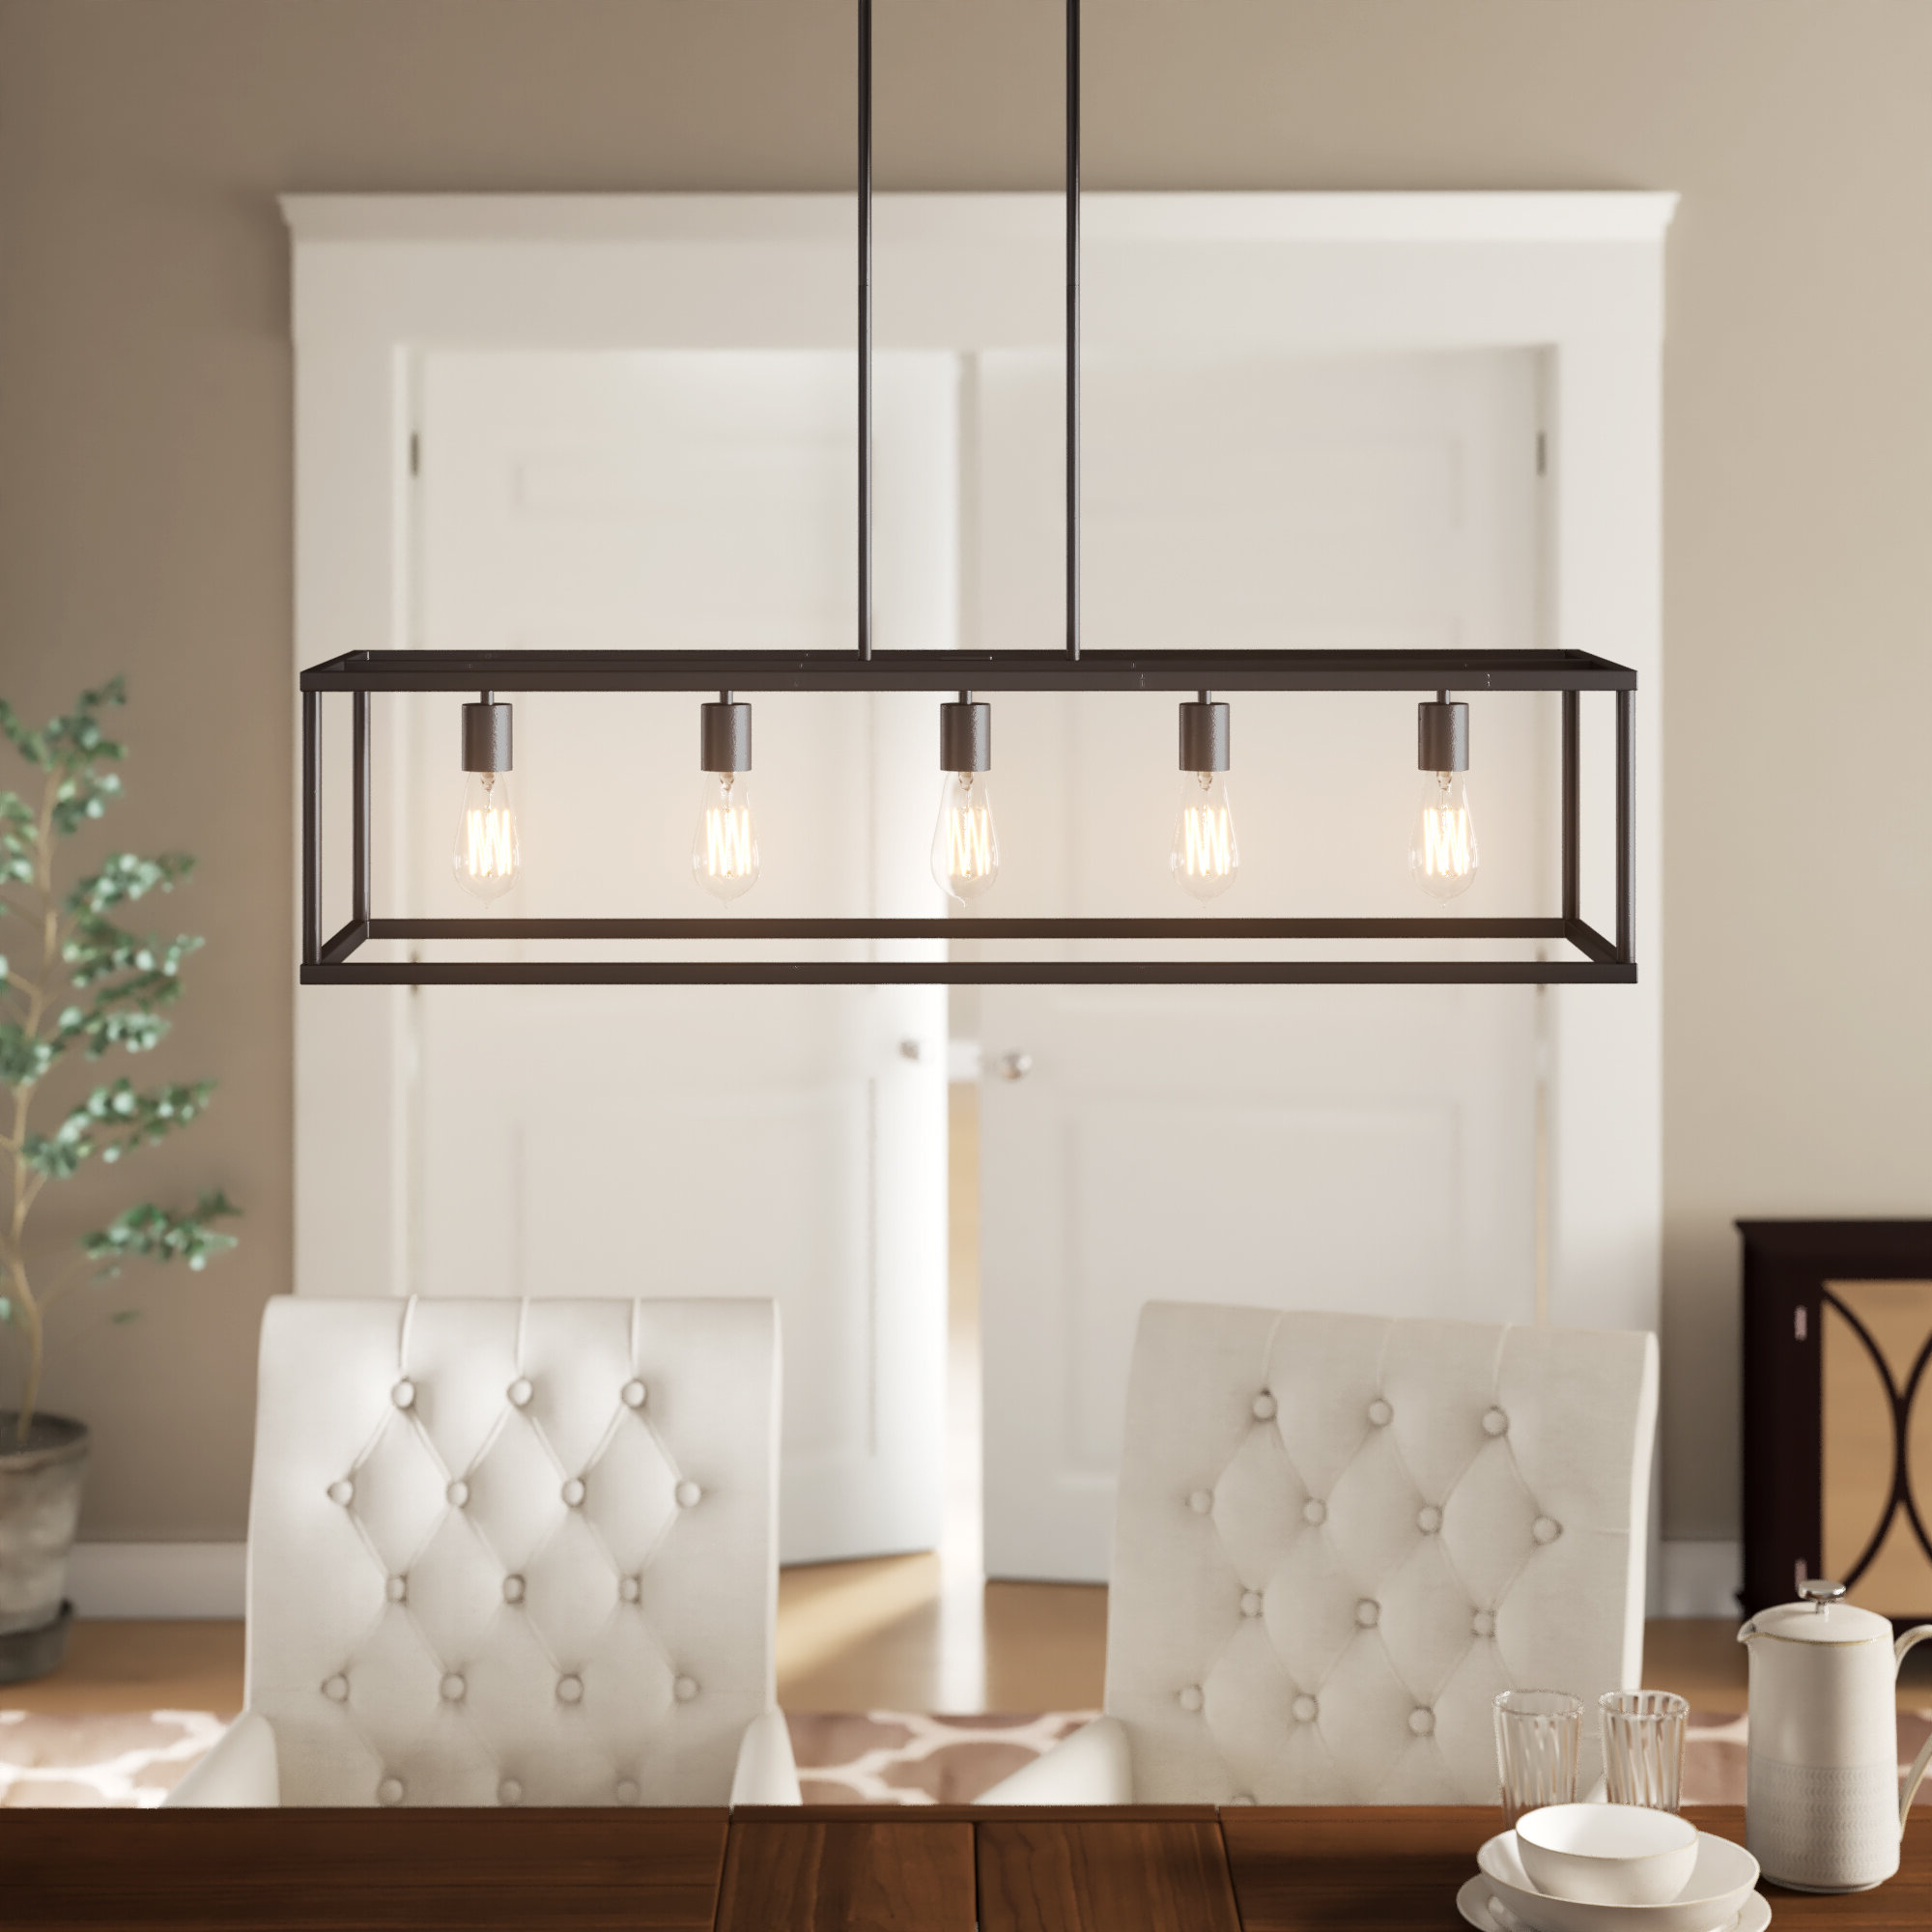 Most Recent Sousa 4 Light Kitchen Island Linear Pendants In Cassie 5 Light Kitchen Island Linear Pendant (View 19 of 25)